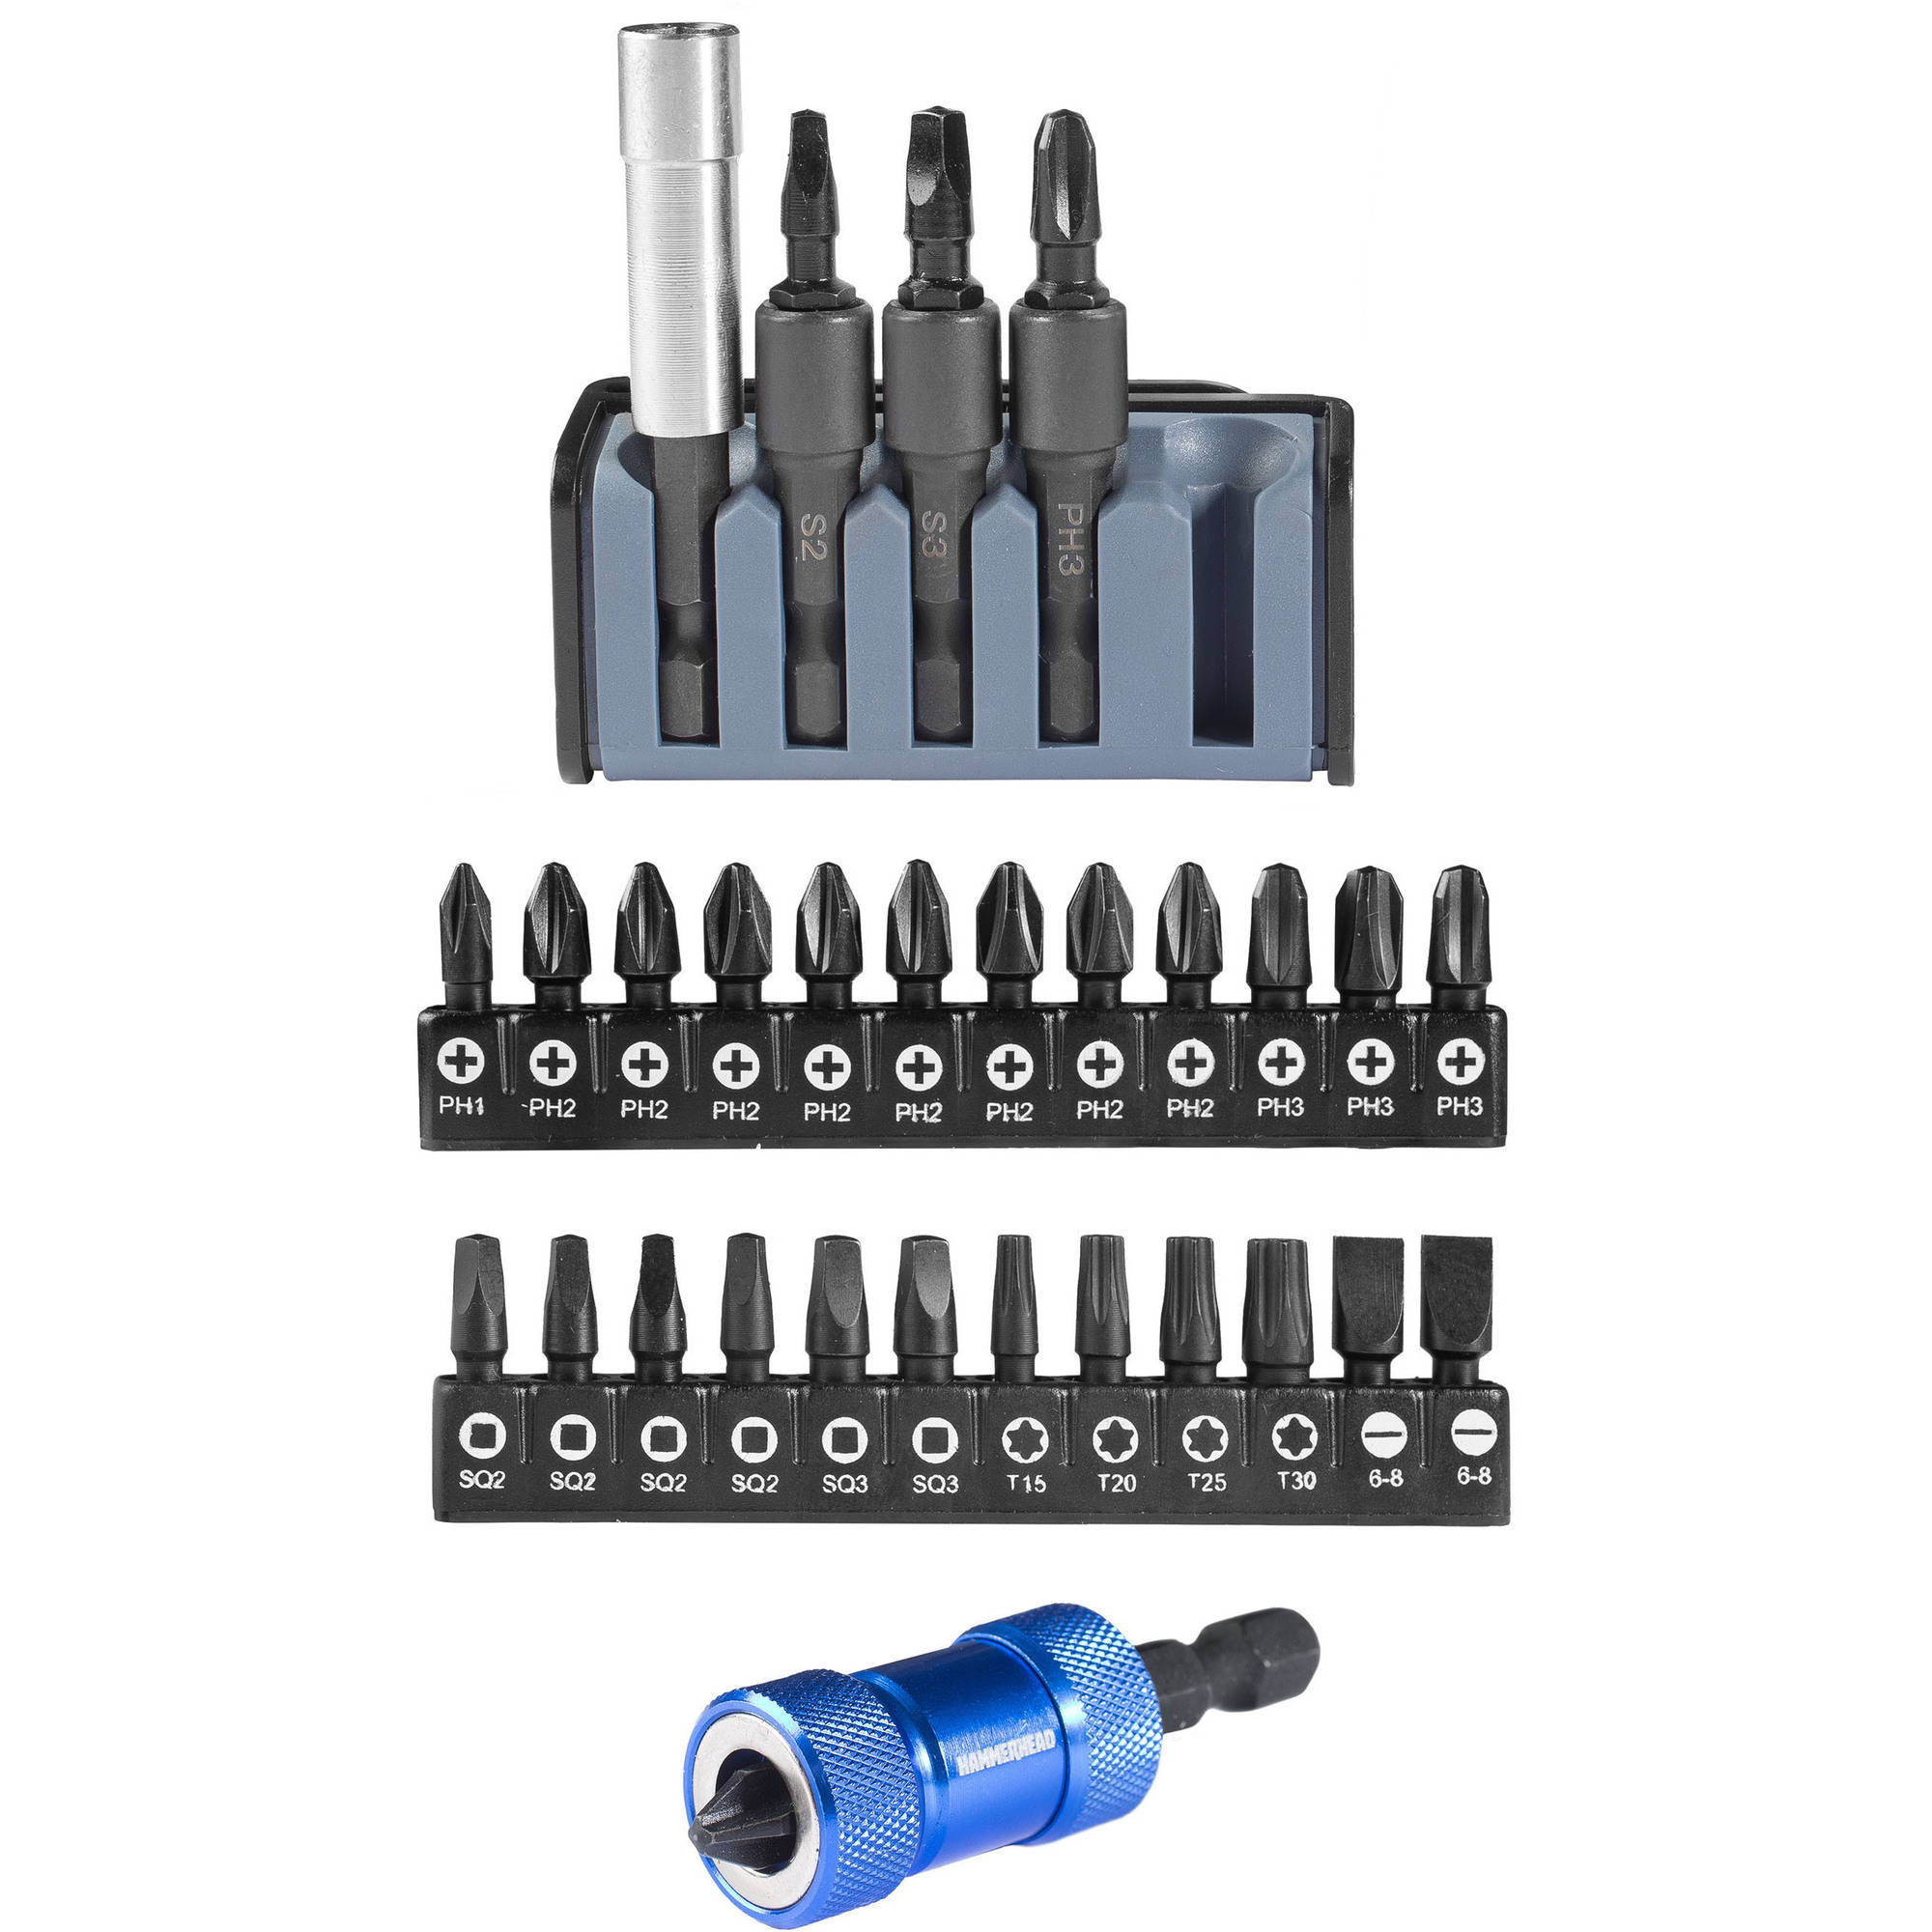 Hammerhead 30pc Impact Bit Kit